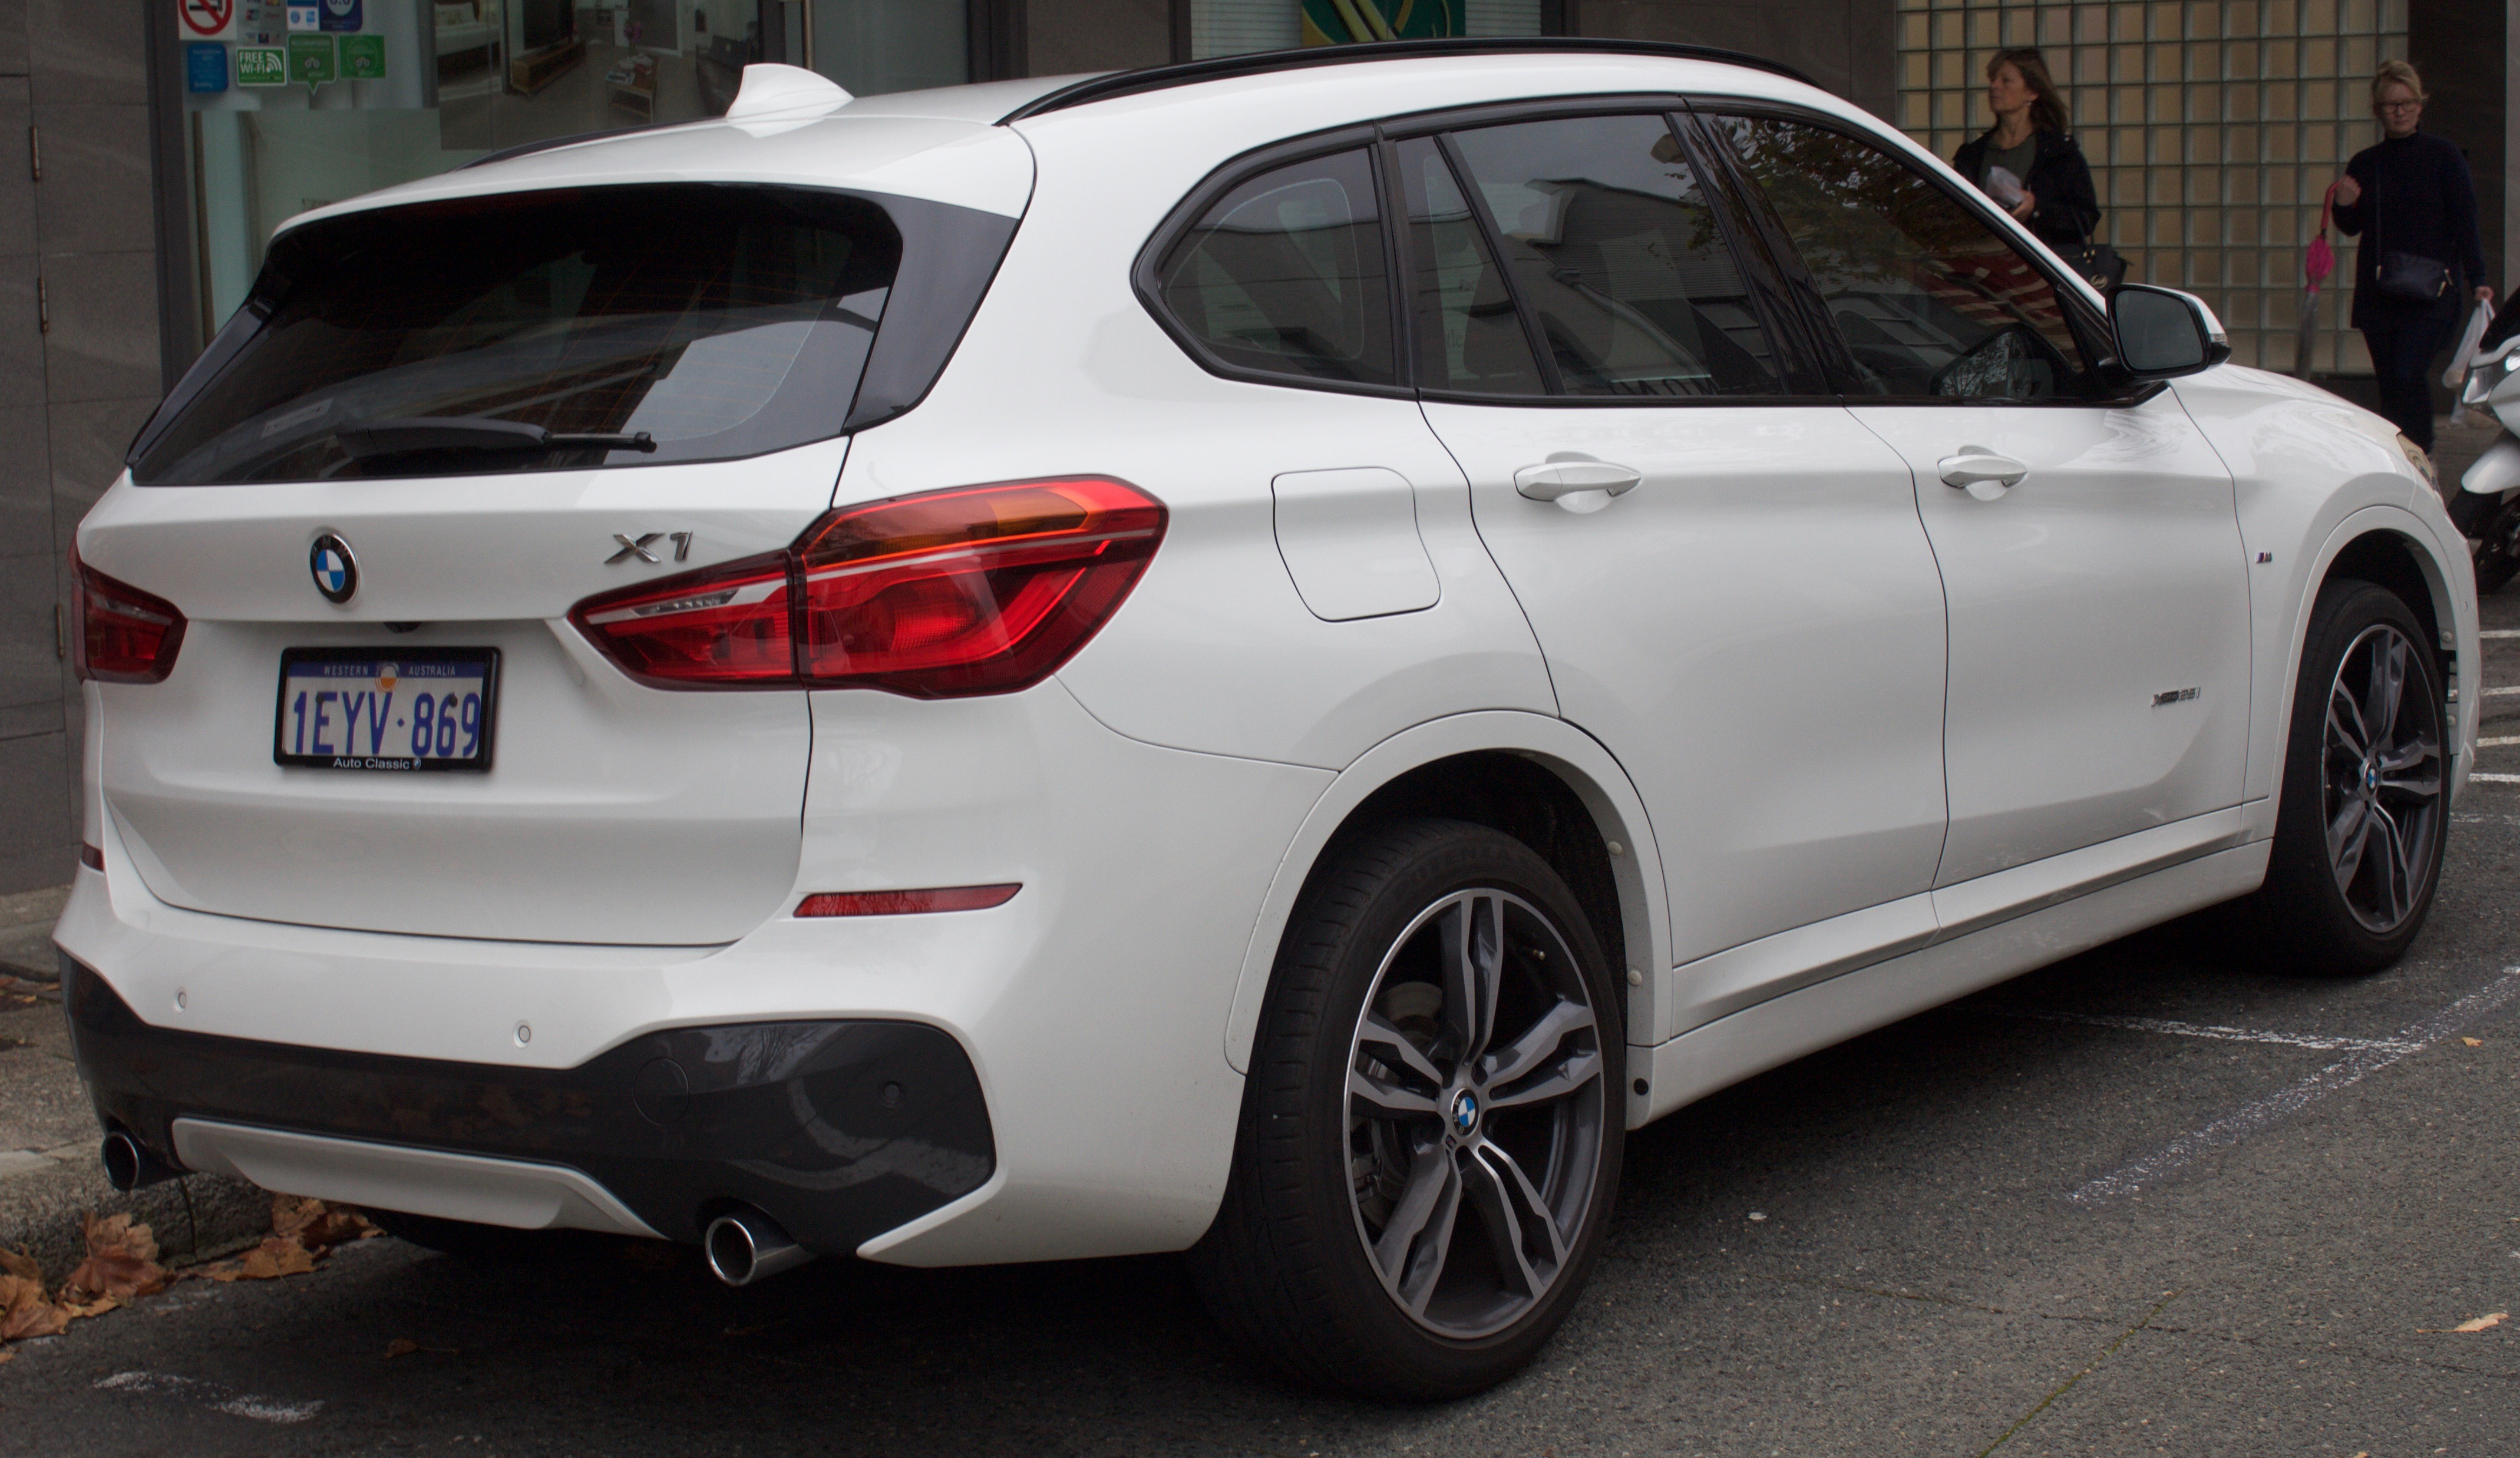 2016_BMW_X1_%28F84%29_xDrive25i_wagon_%282017 07 15%29_02 bmw x1 wikipedia  at edmiracle.co